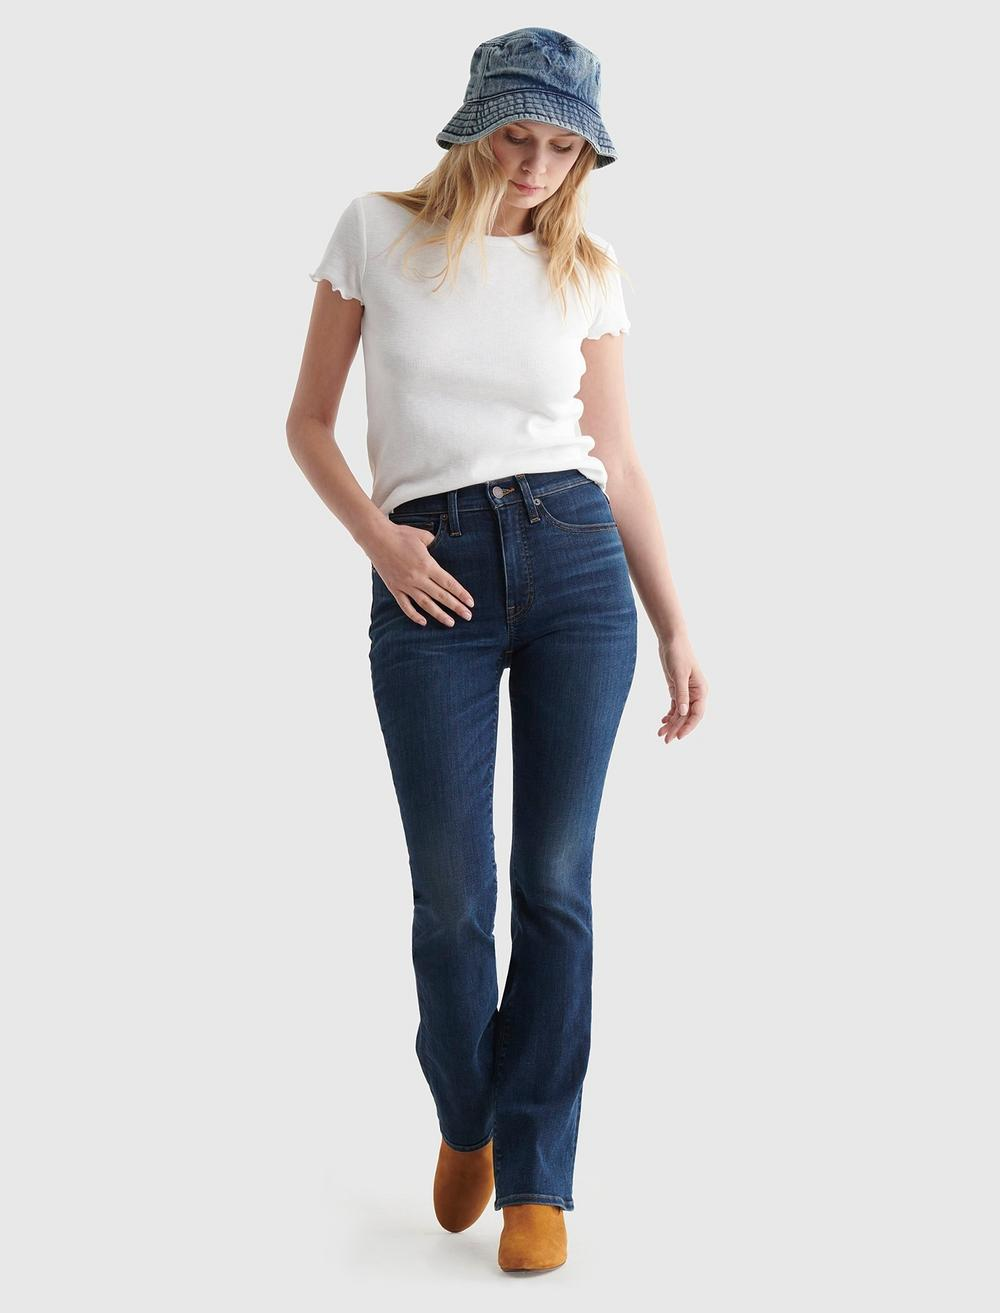 HIGH RISE BIANCA BOOT JEAN, image 1